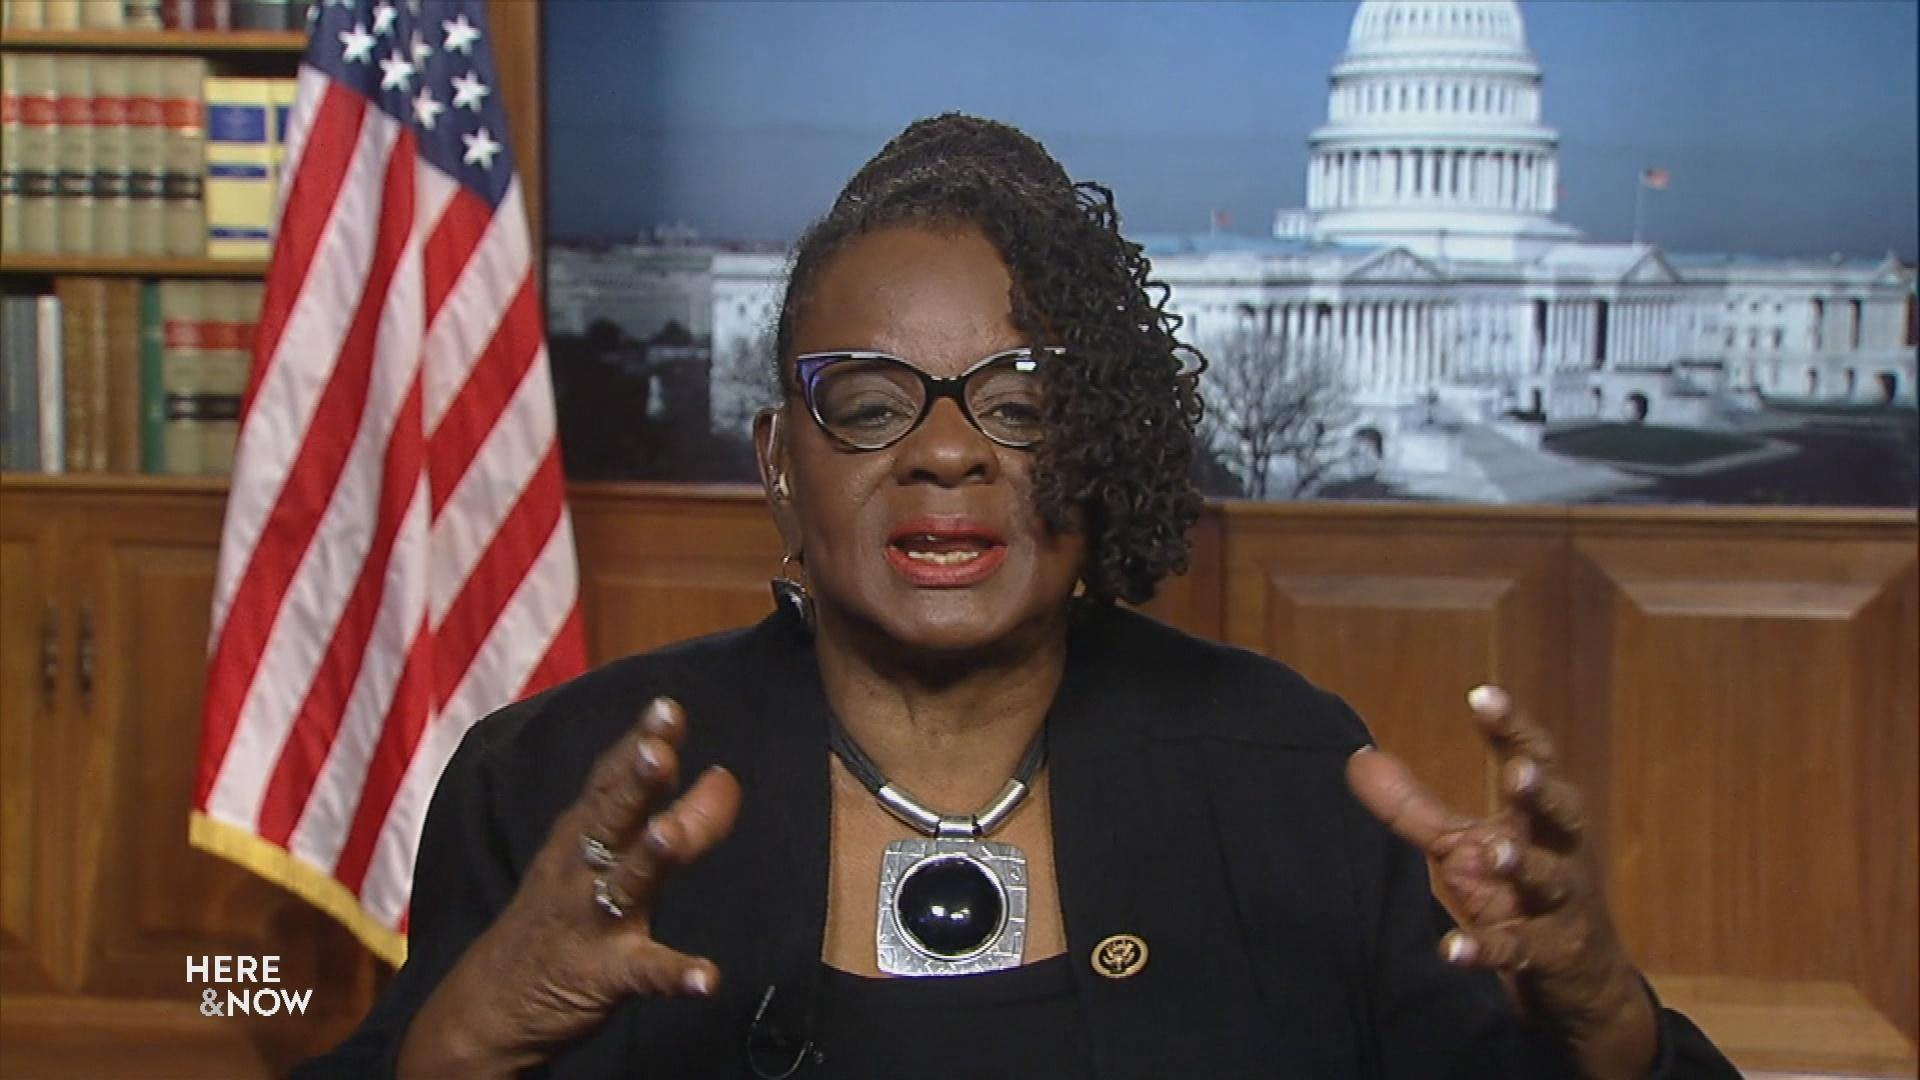 U.S. Rep. Gwen Moore on Impeachment Hearings